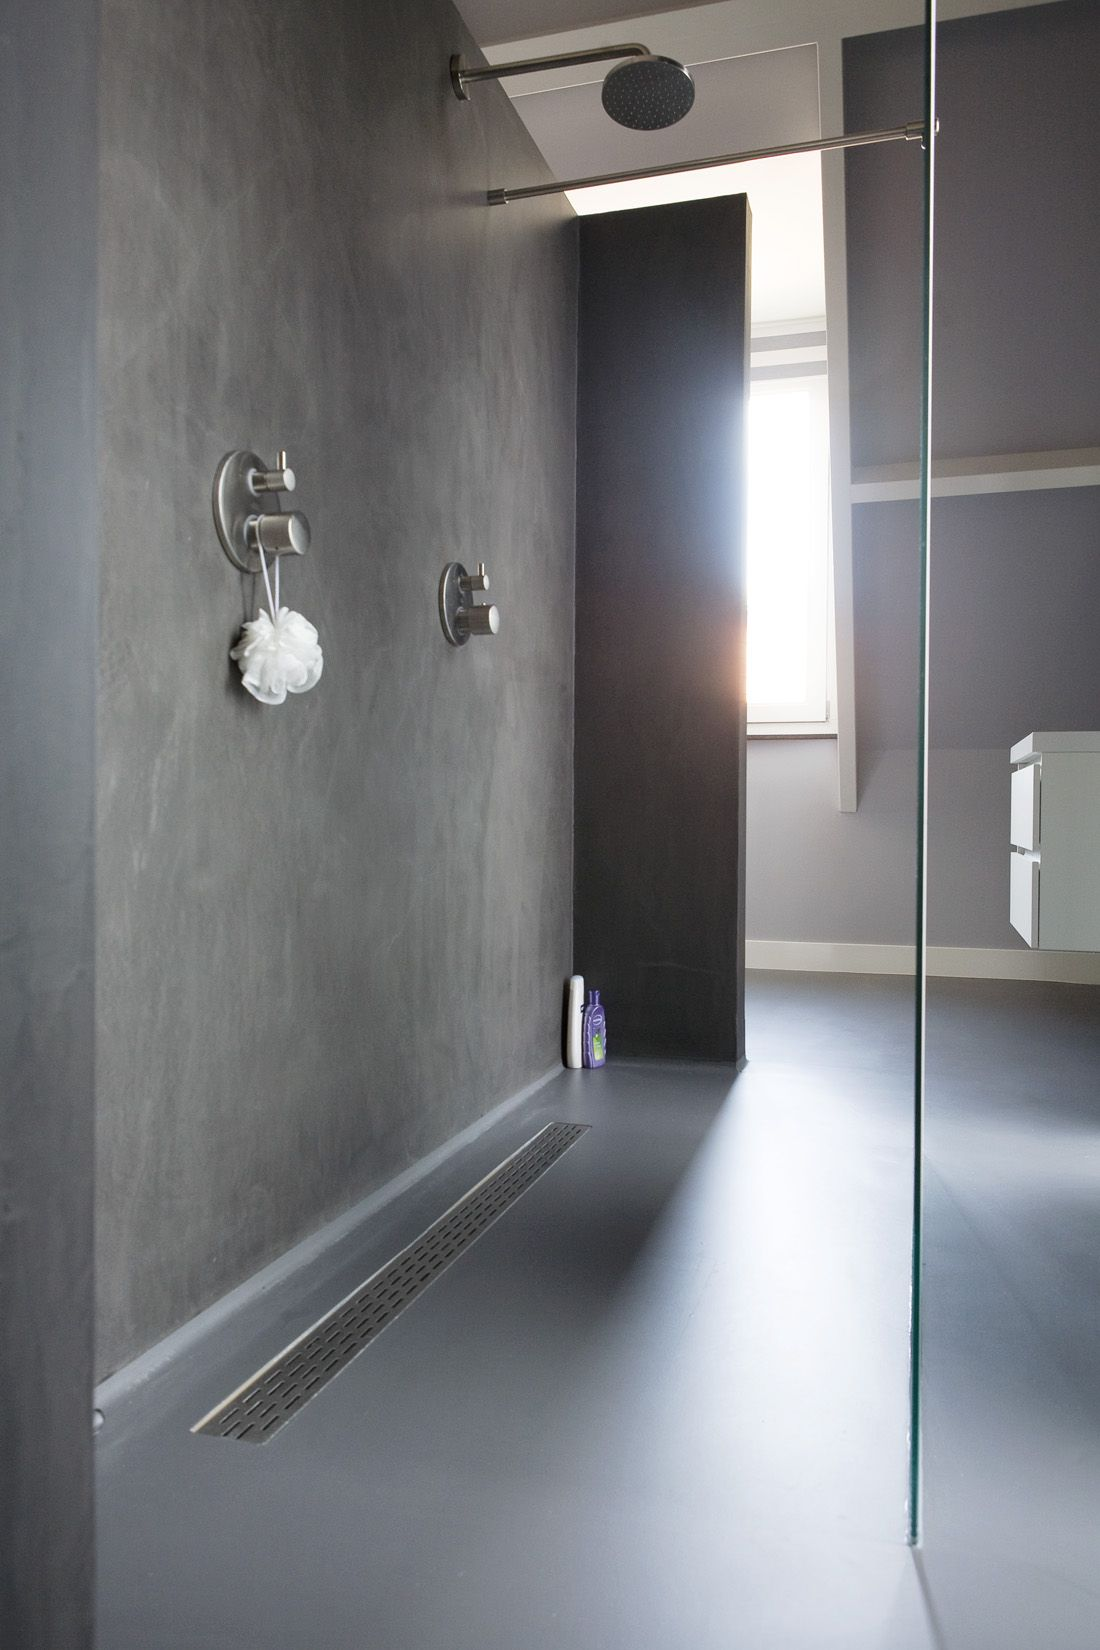 Fotou0027s Laguzzo | Laguzzo Wall Covering By Senso NB Drain In Floor